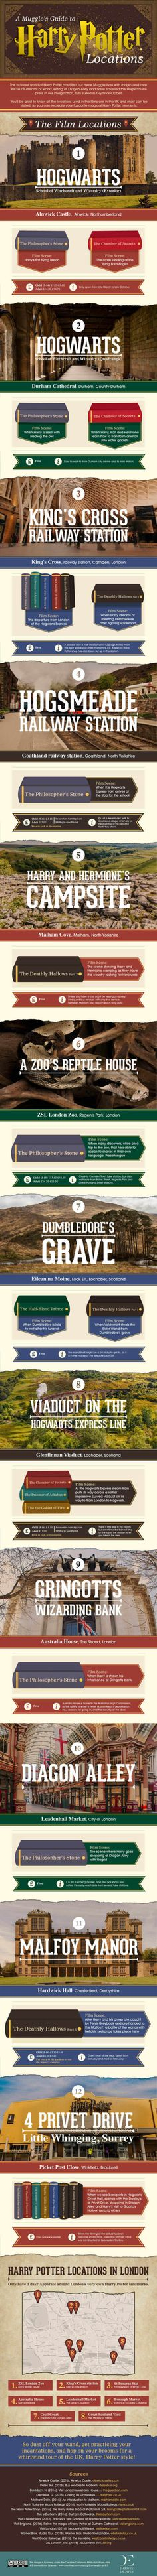 Harry Potter film locations #infographic